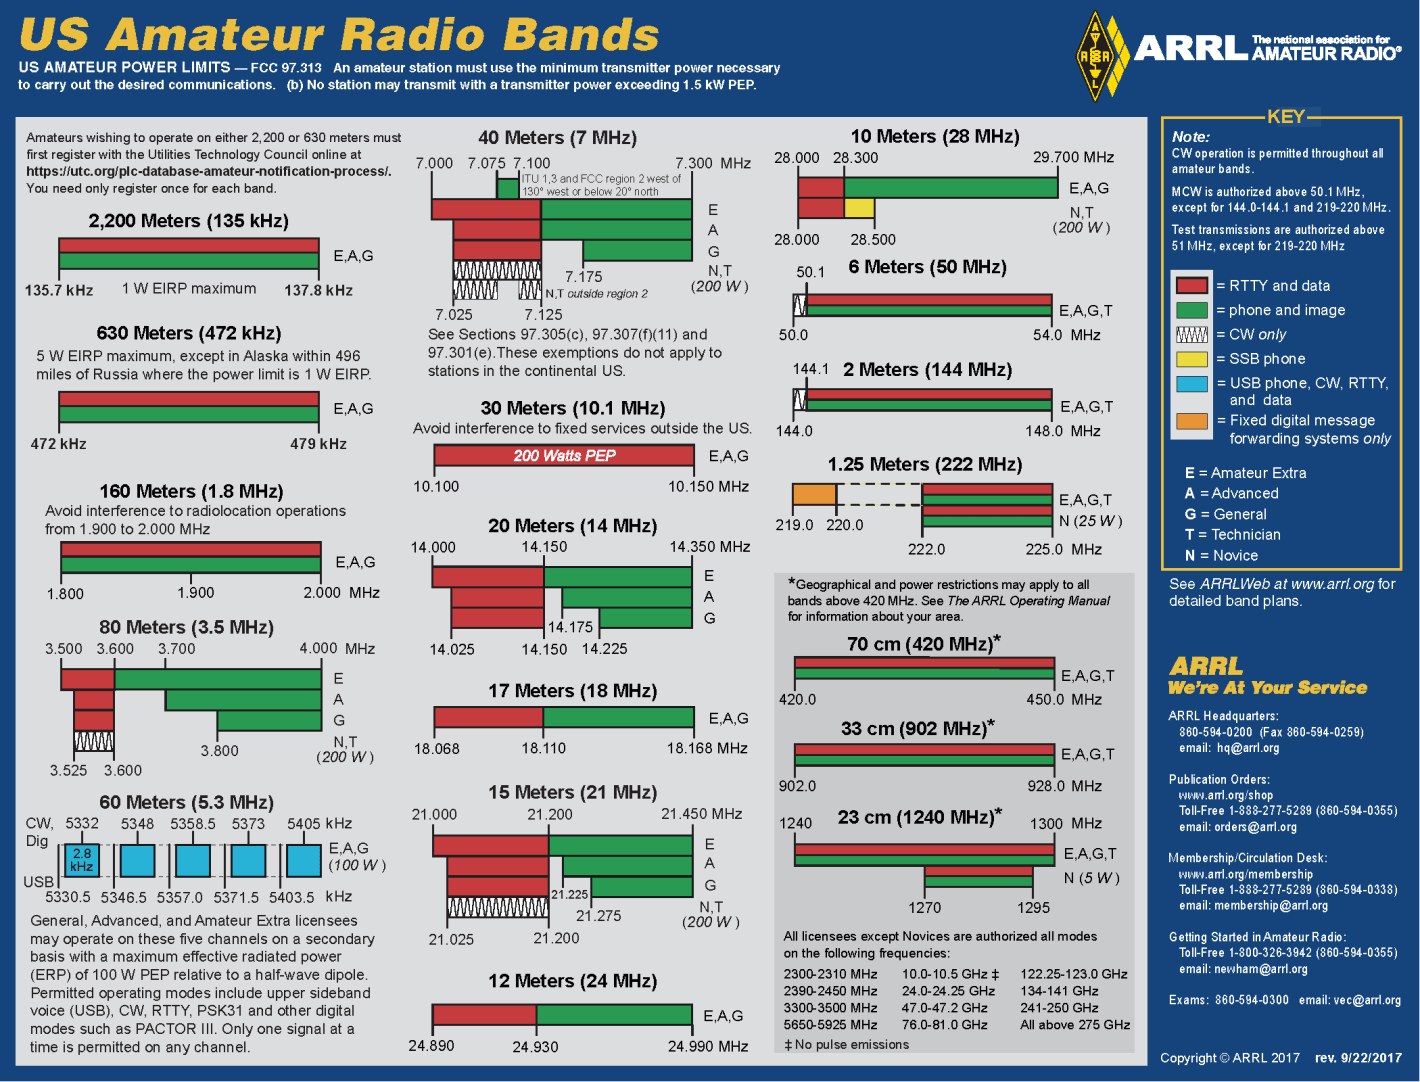 PLAN DE BANDAS ARRL a color